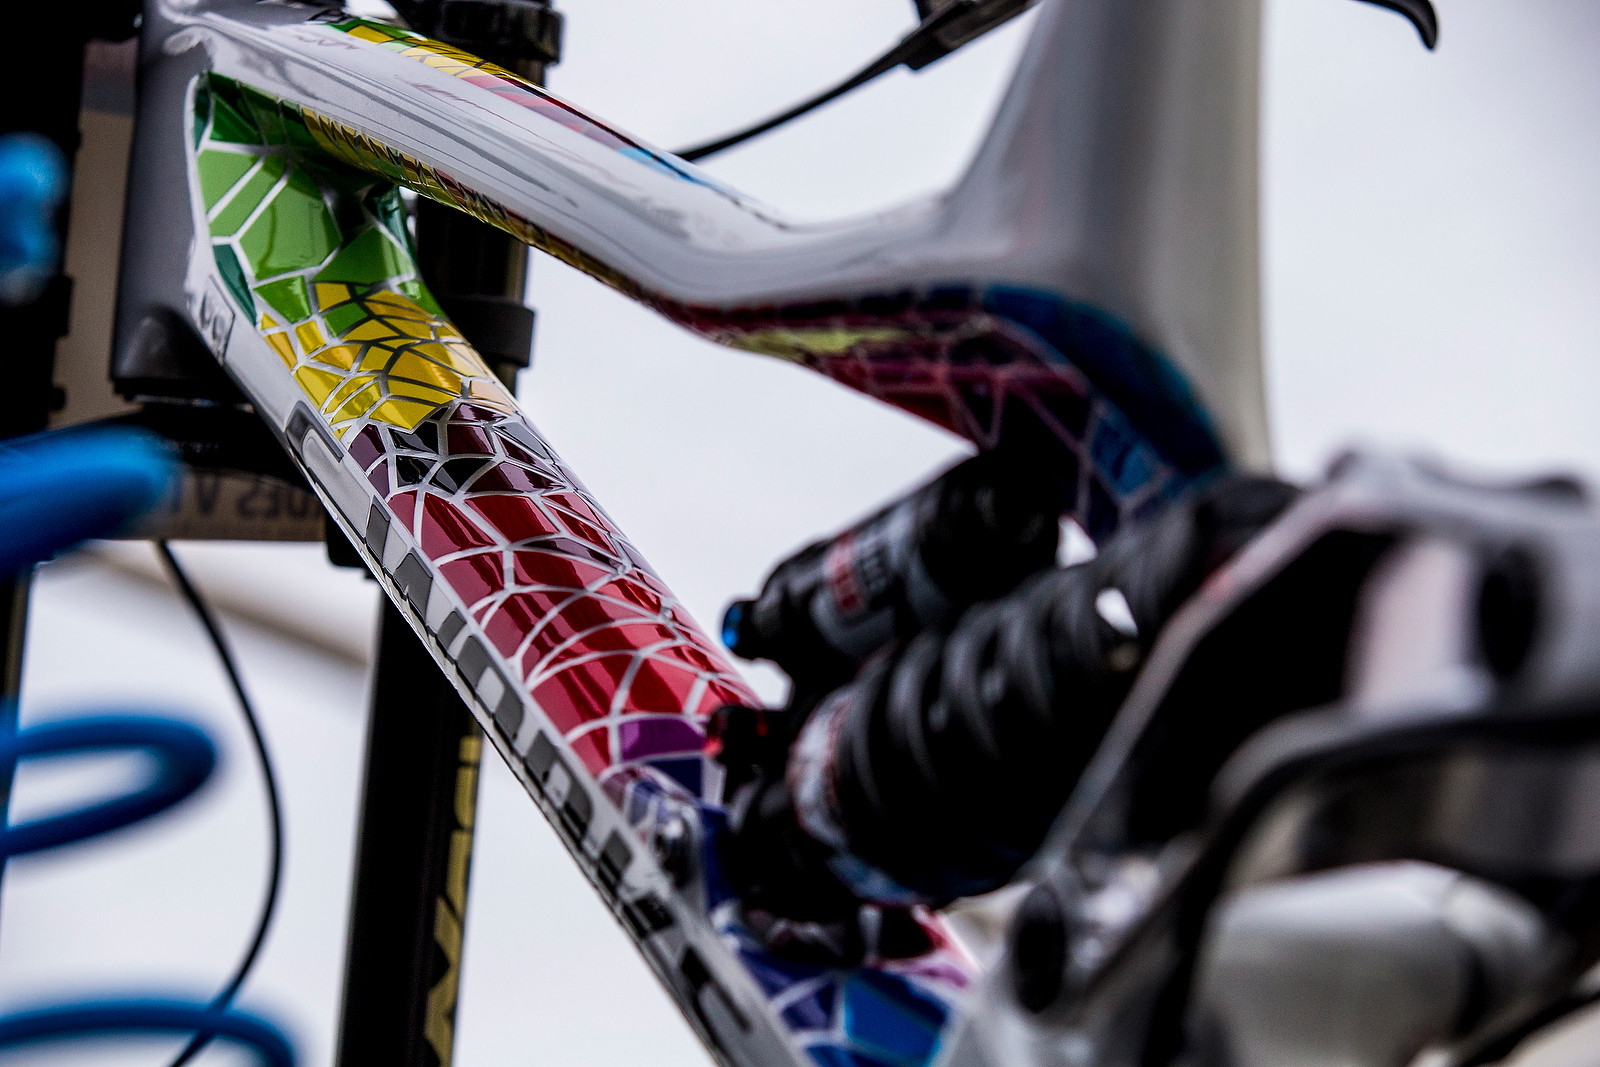 More #drool Shots of the Specialized Gravity Bikes - PIT BITS - 2016 Lourdes World Cup Downhill - Mountain Biking Pictures - Vital MTB